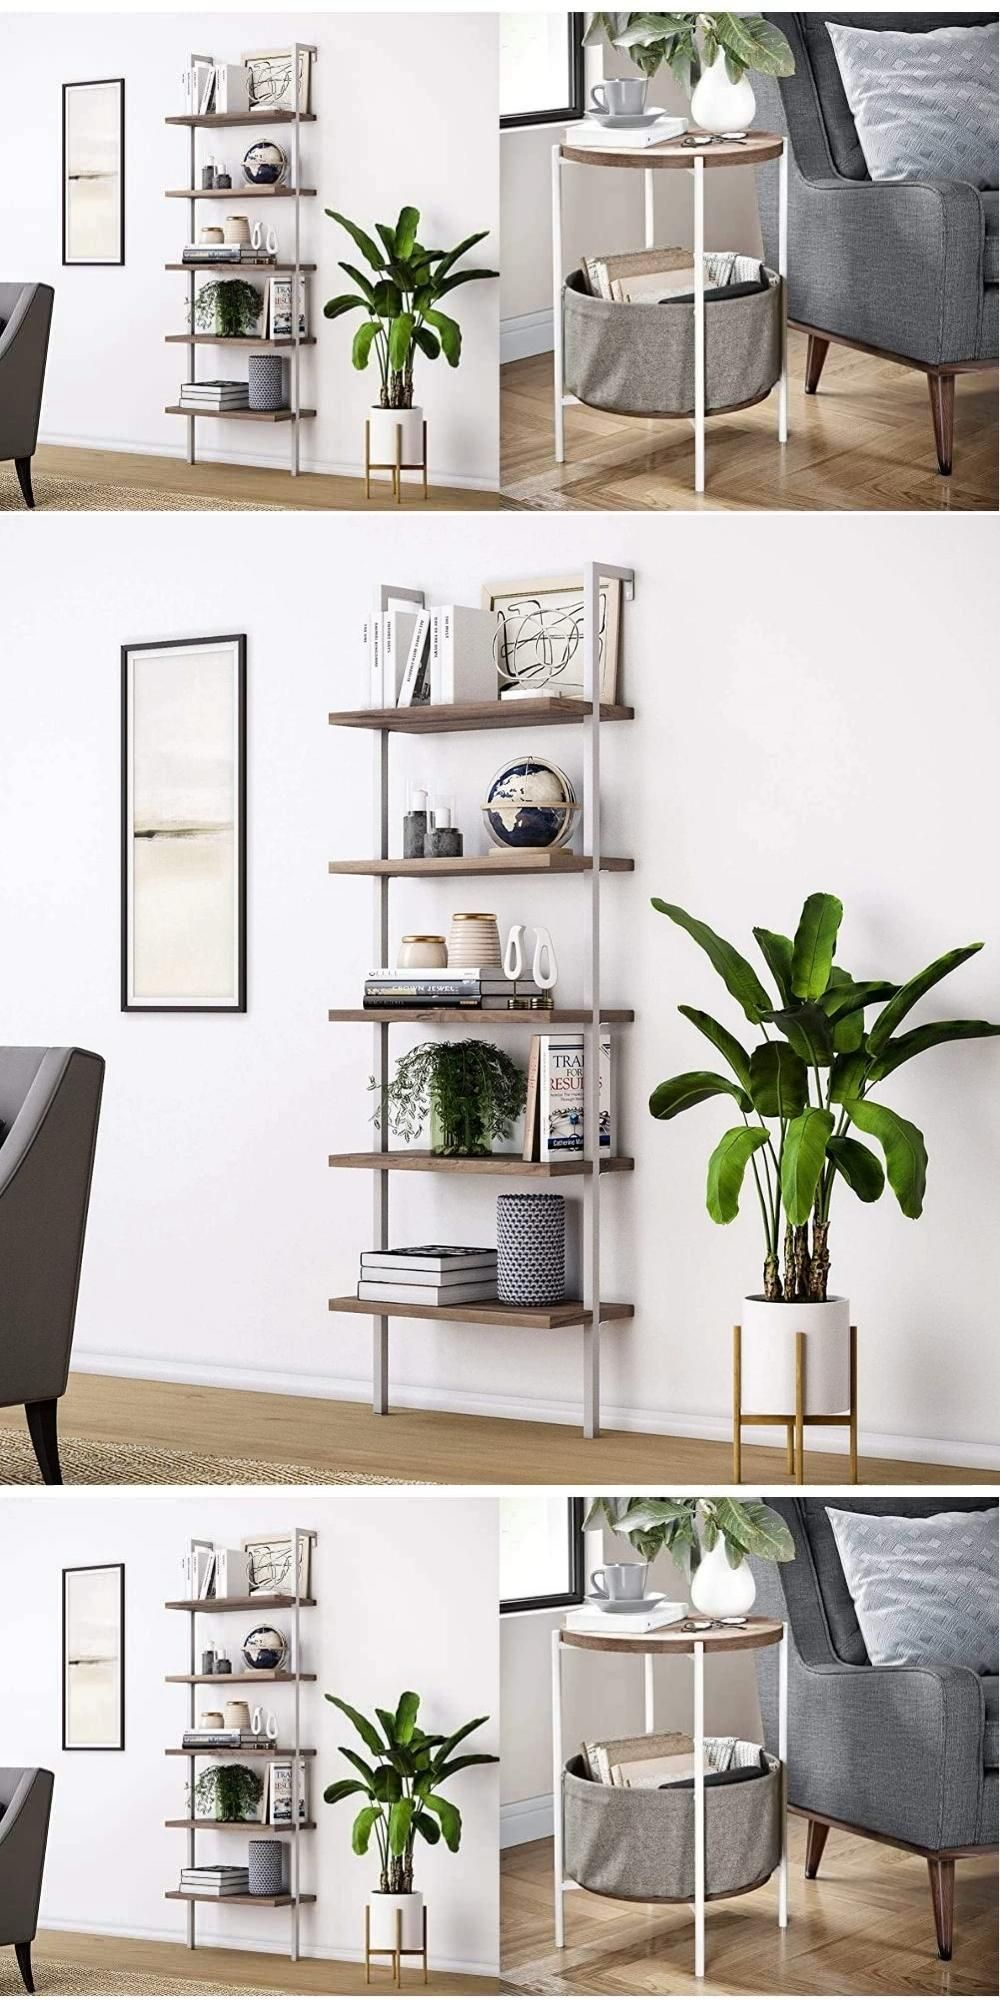 5-Shelf Wood Ladder Bookcase with Metal Frame & Or